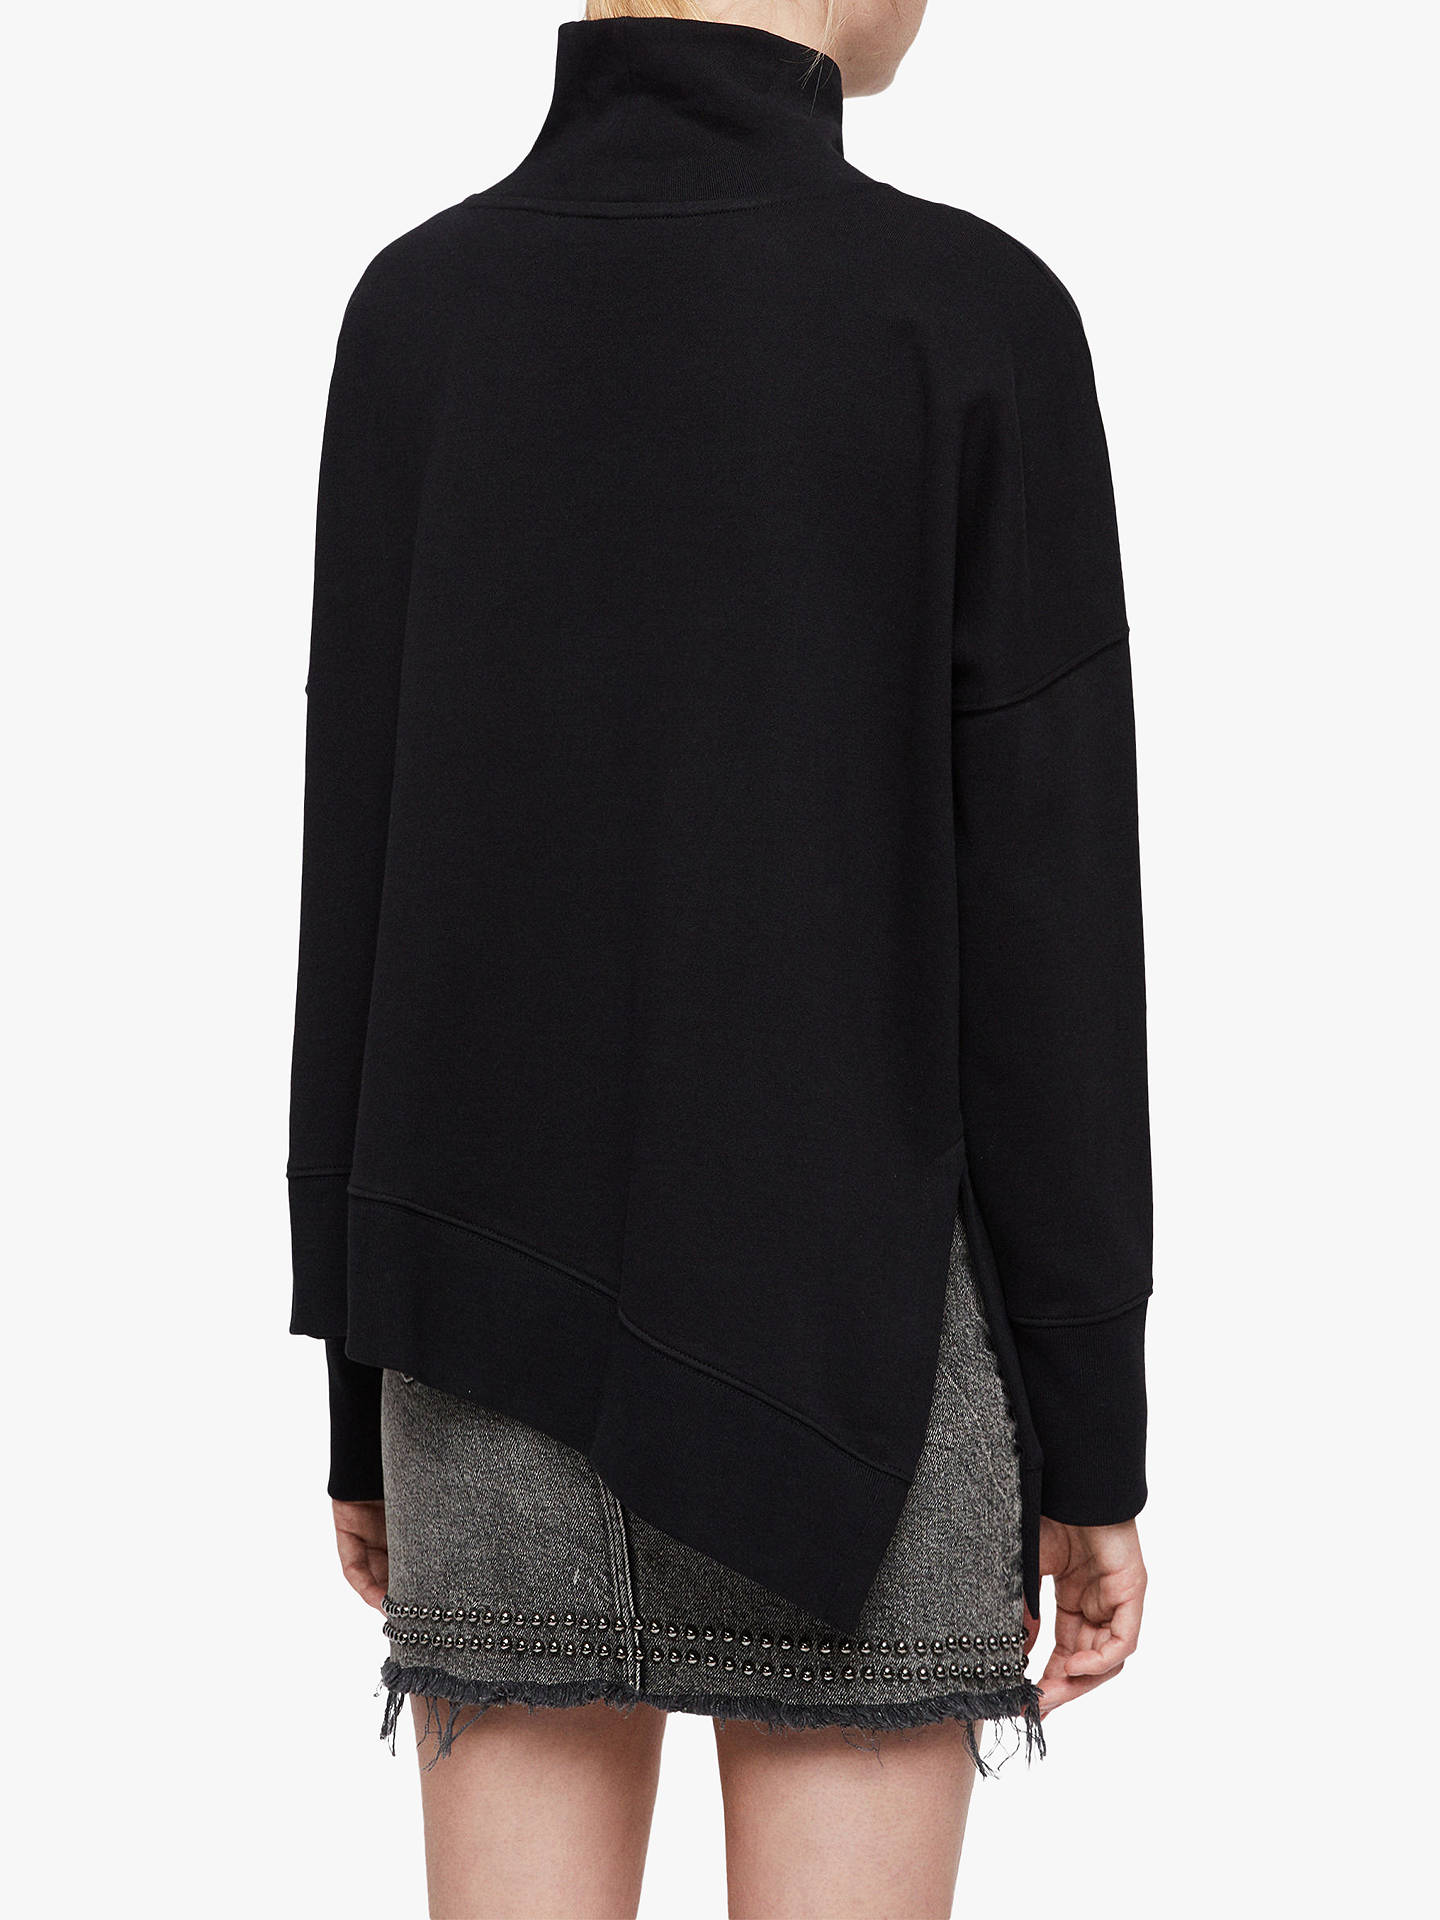 BuyAllSaints Navarre Roll Neck, Black, L Online at johnlewis.com